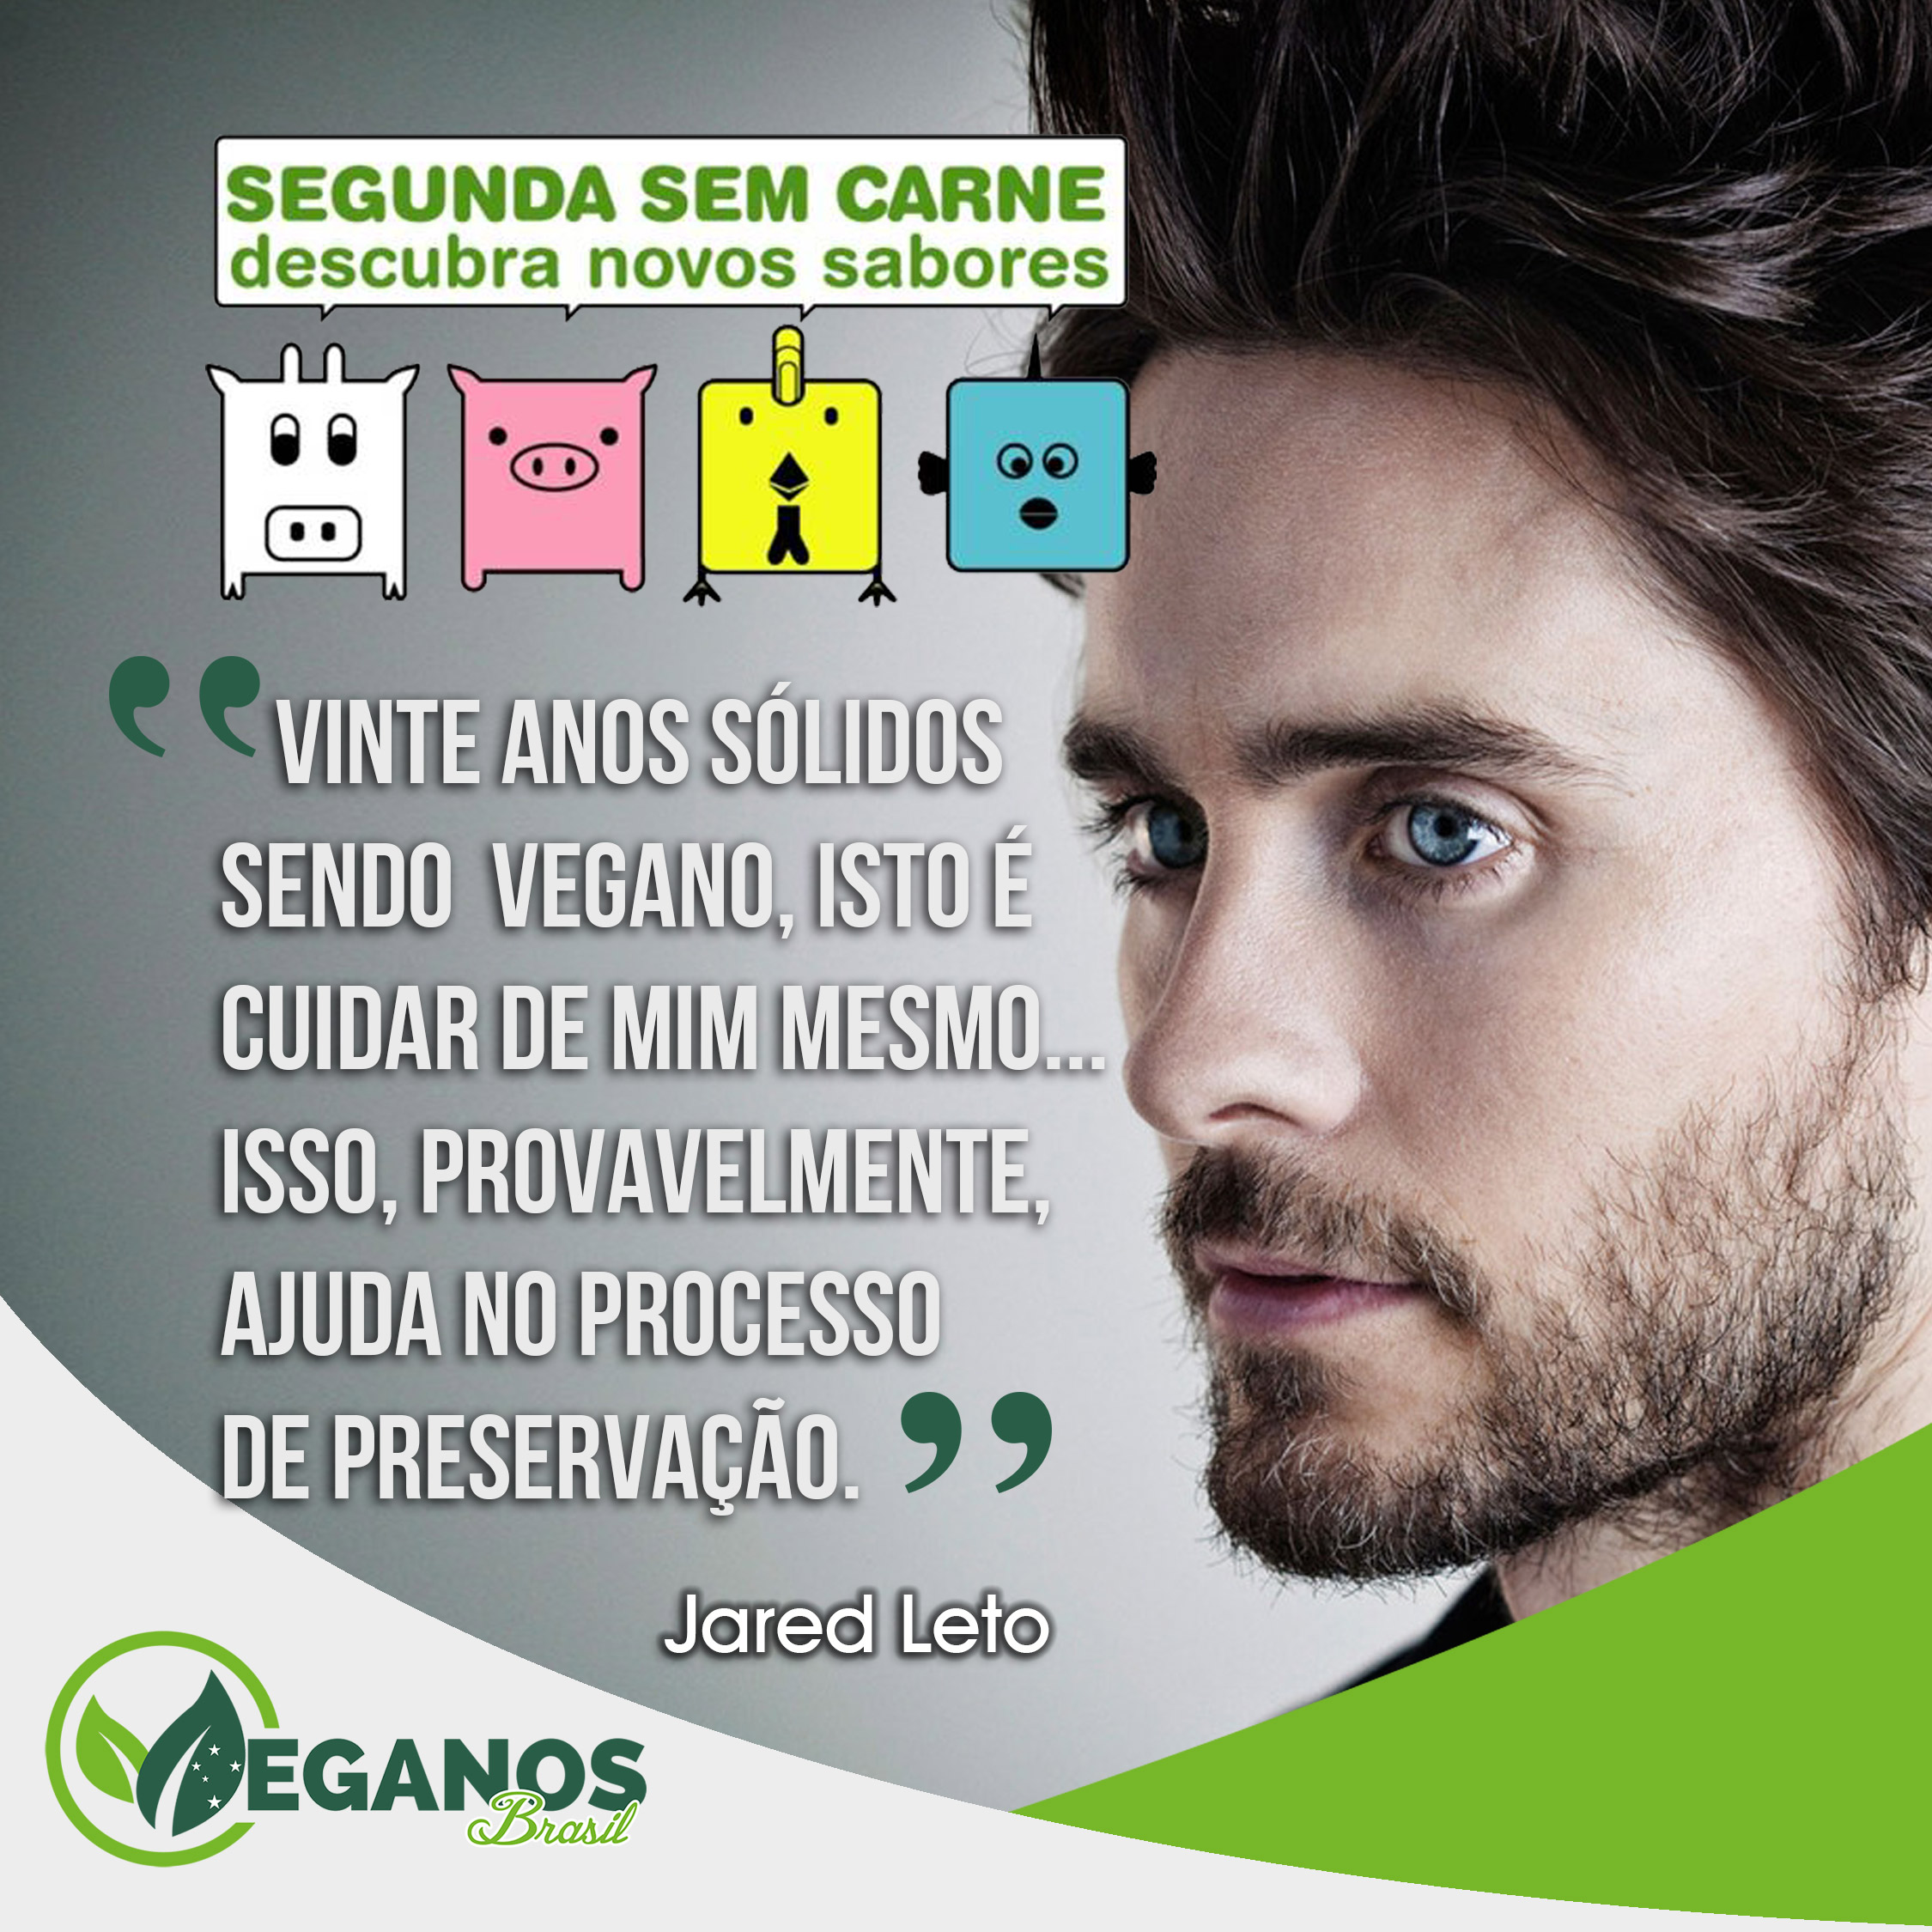 Post_Instagram_SEGUNDASEMCARNE_jared